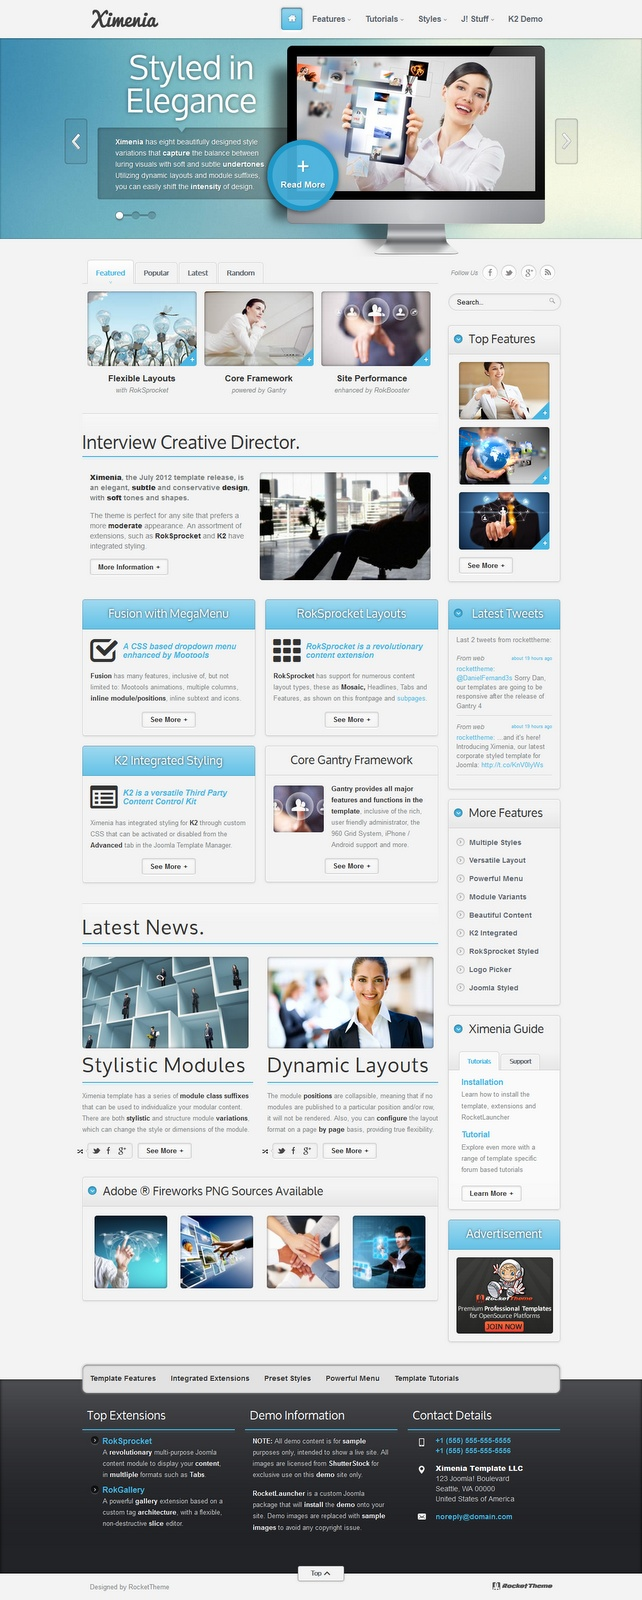 86 best Joomla Templates images on Pinterest | Joomla templates ...